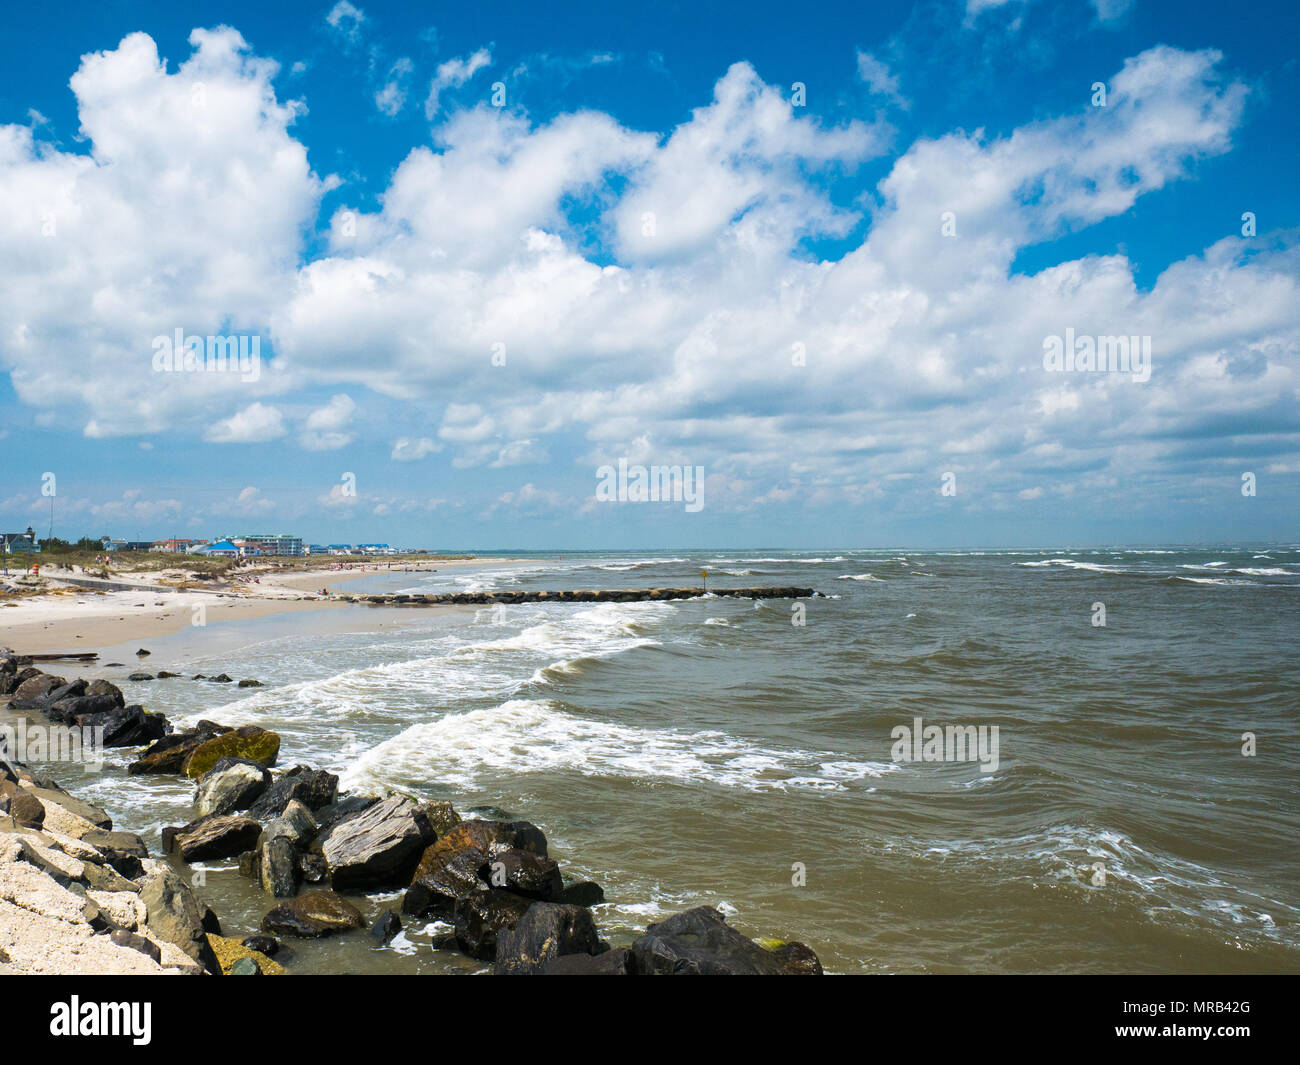 OCEAN CITY - MAY 24: View of the seashore with beachfront hotels in the background in Ocean City, MD on May 24, 2014. Ocean City, MD is a popular beac - Stock Image